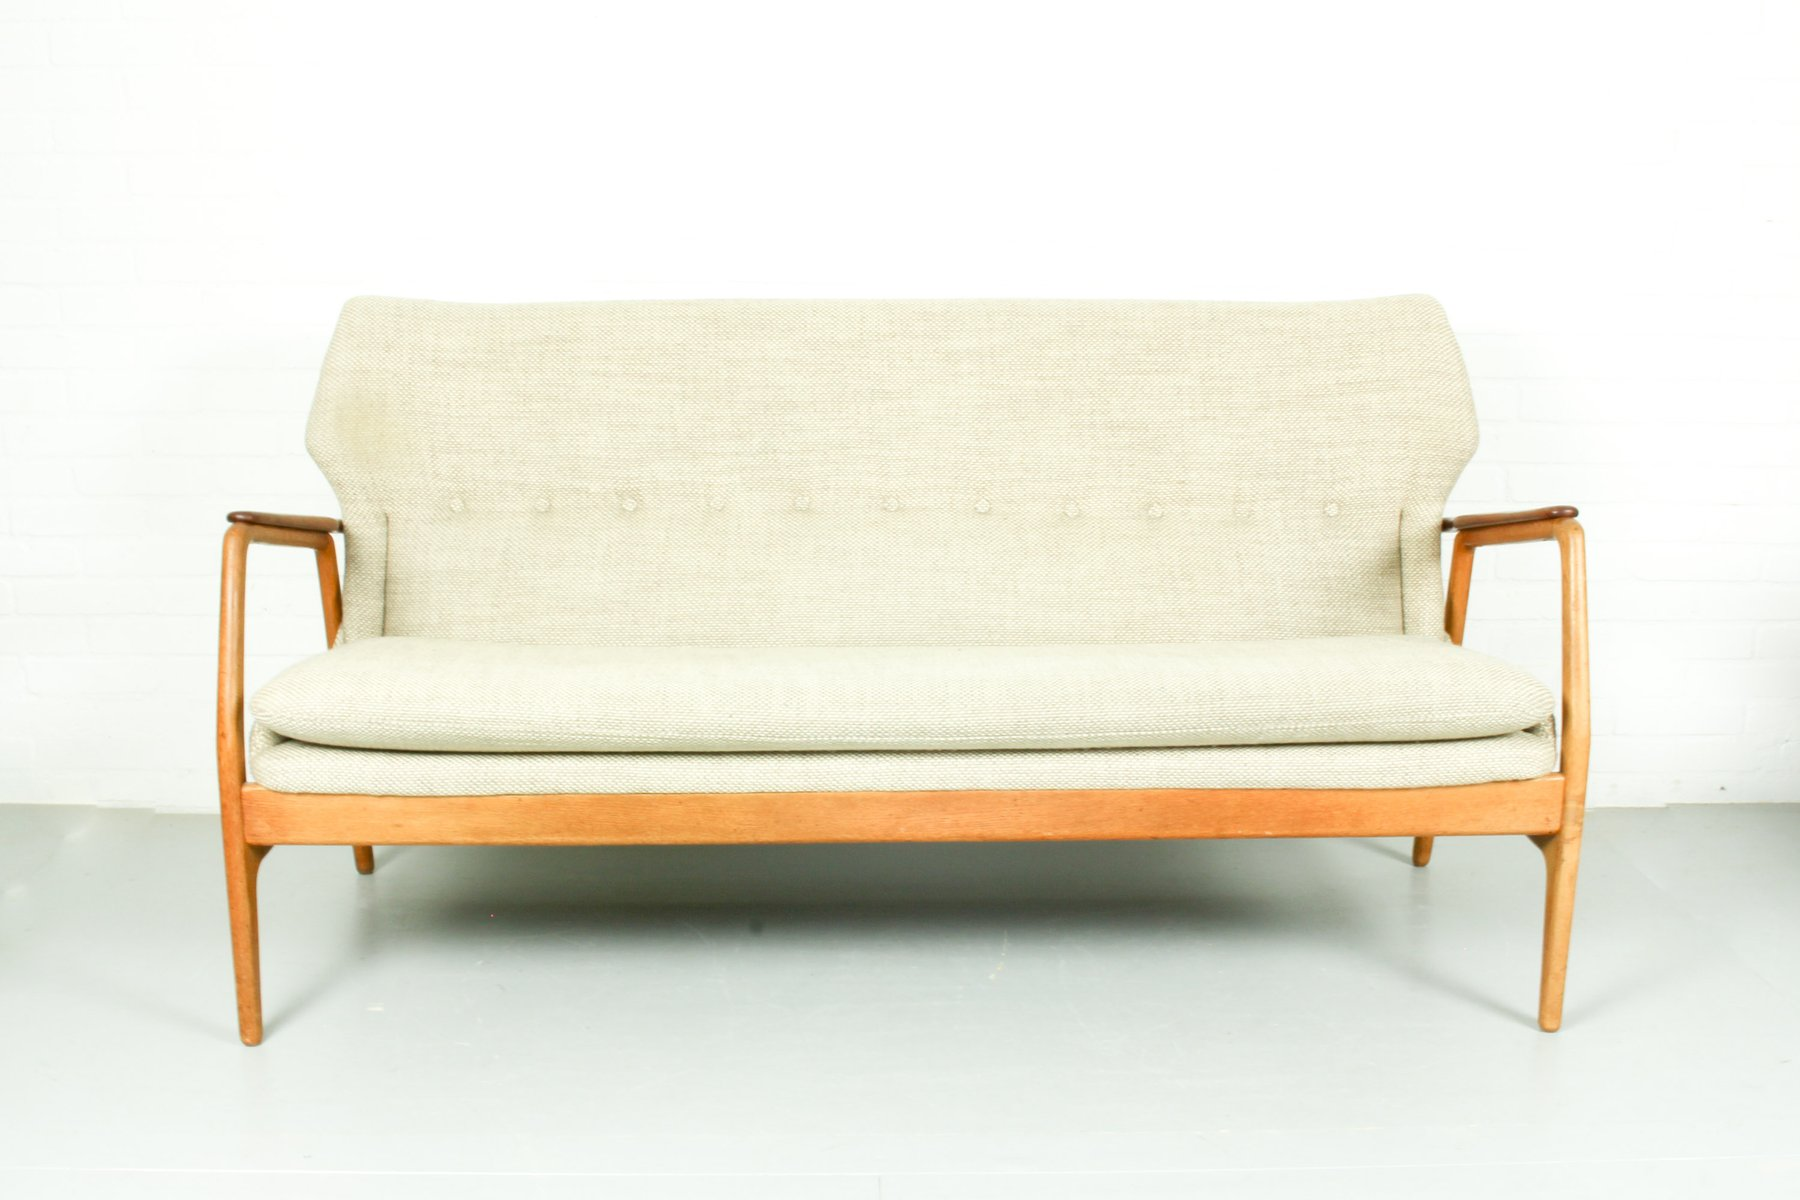 Vintage Couch Vintage Sofa By Aksel Bender Madsen For Bovenkamp 1950s